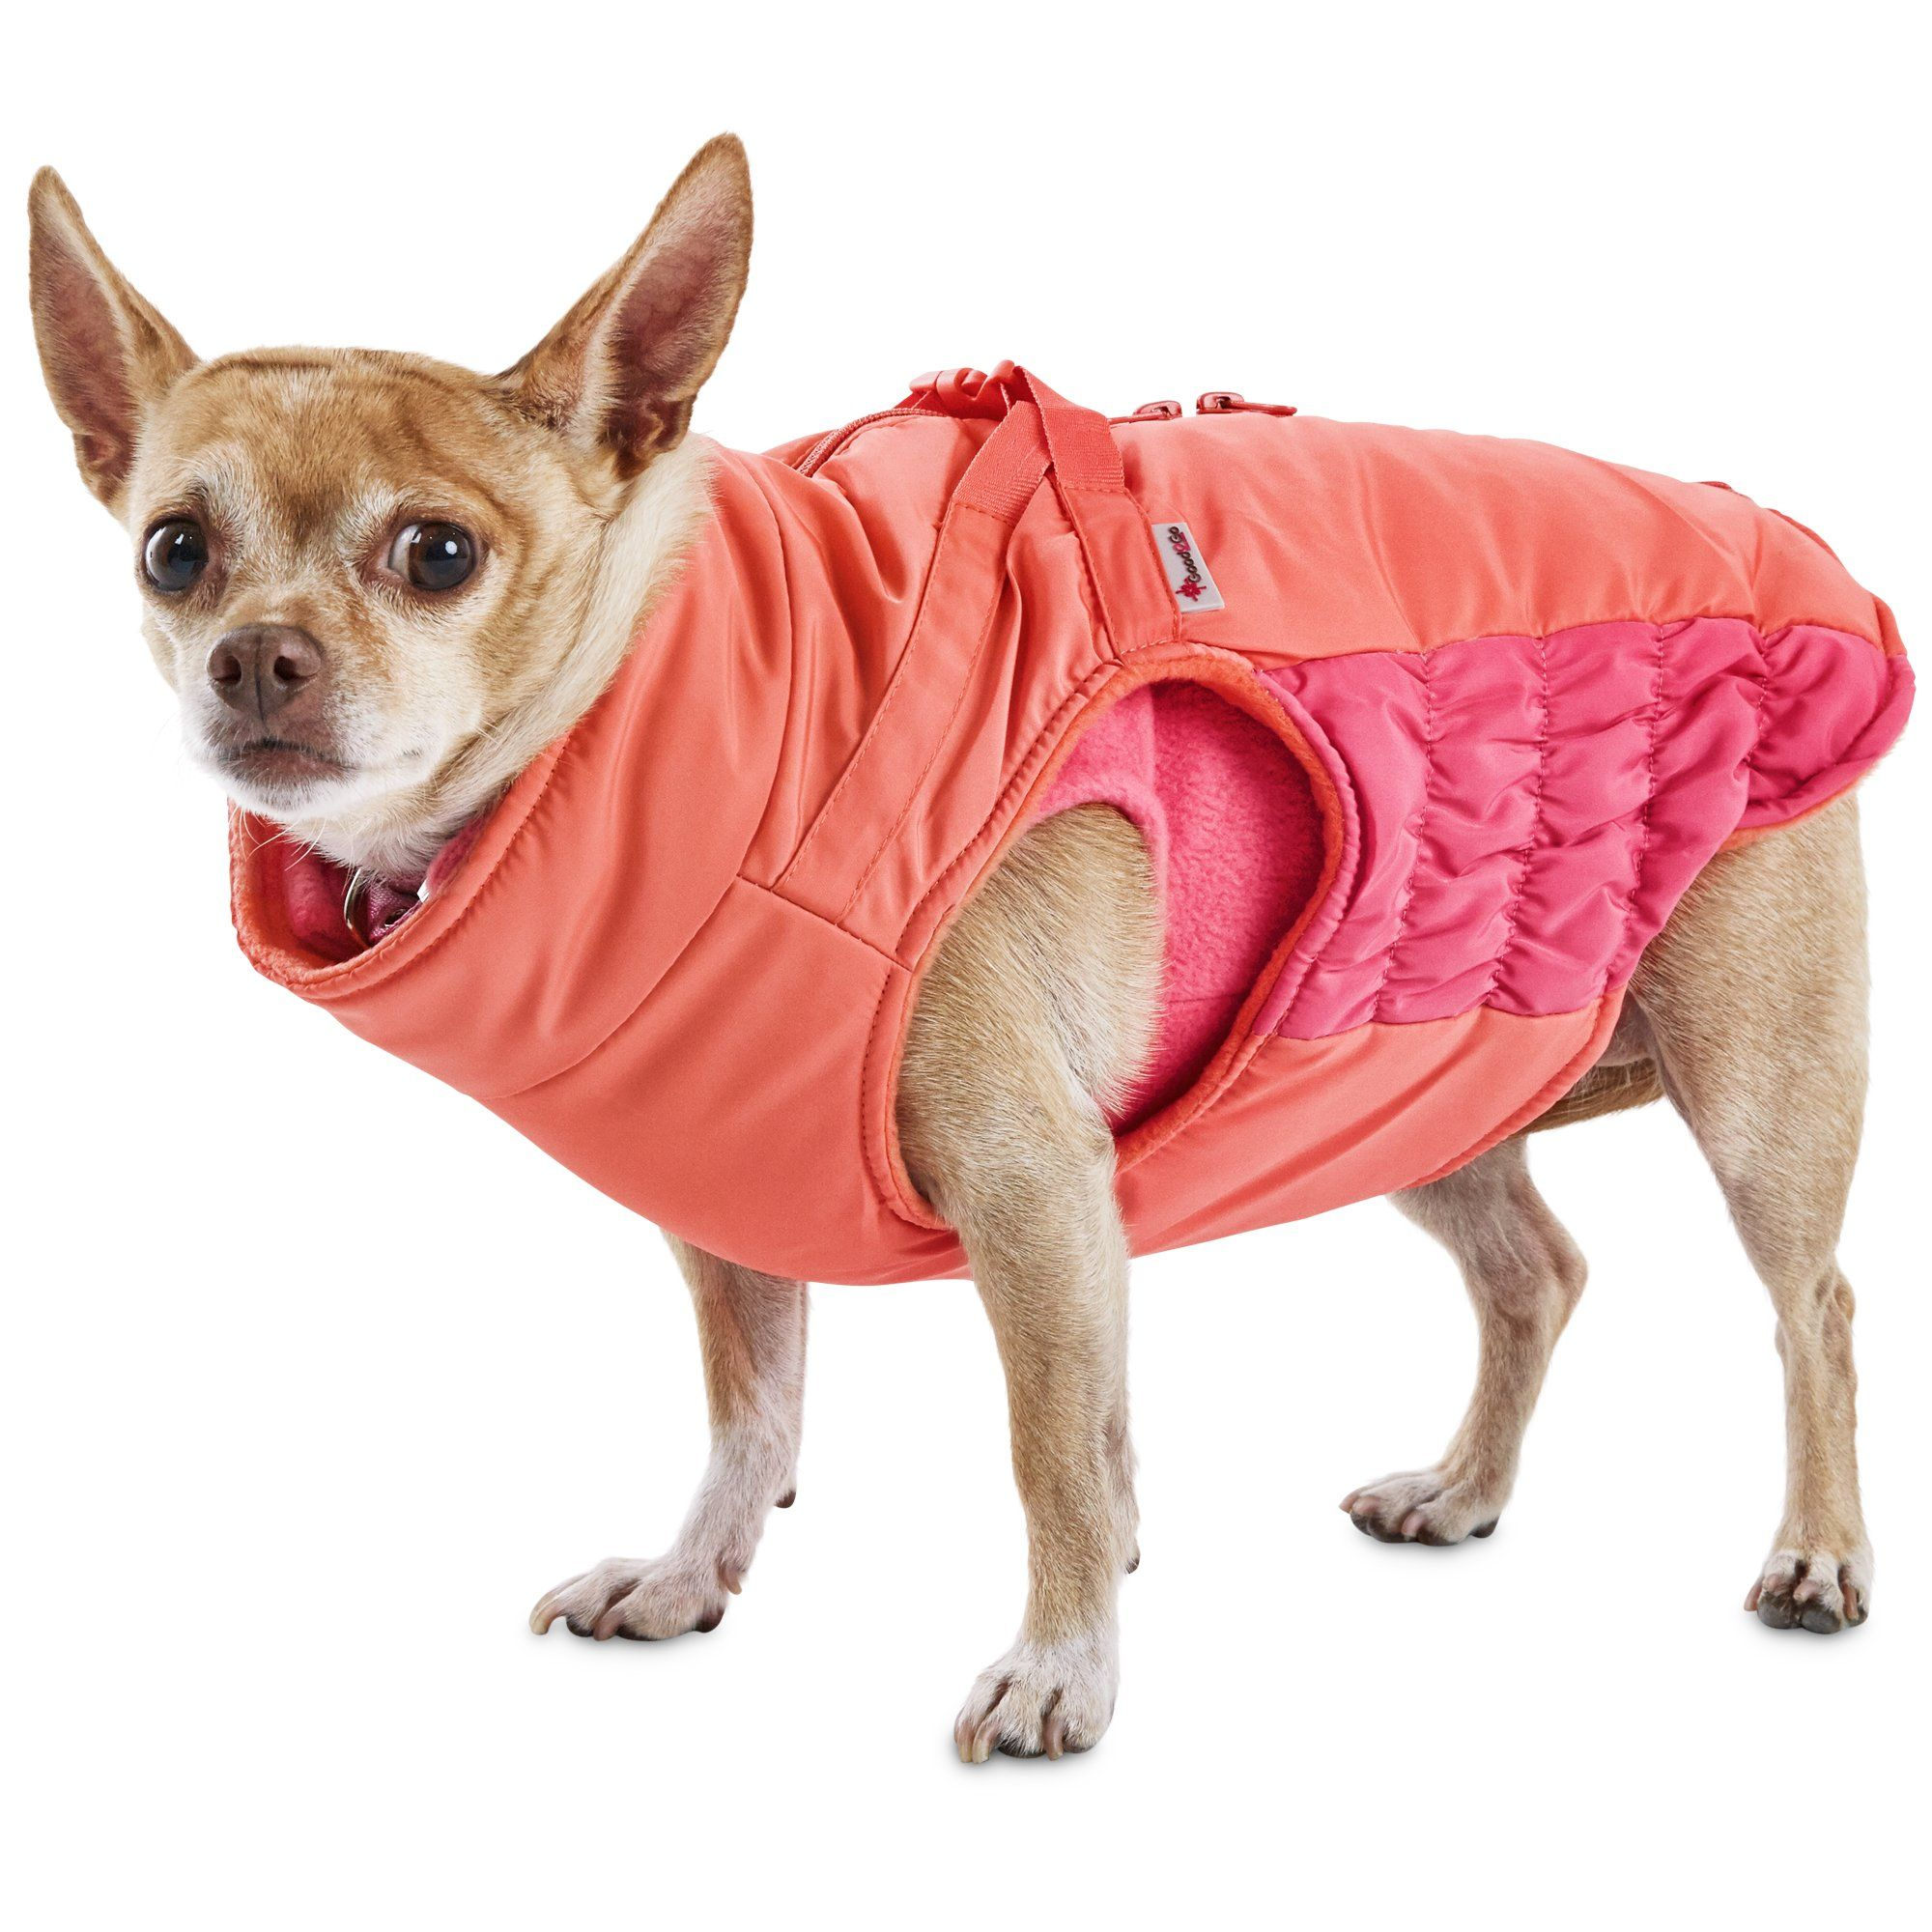 Good2go Pink 3 In 1 Snowboard Dog Coat Wrap Your Pooch In The Ultimate Of Warmth And Slope Style With The Good2go Pink 3 In 1 Dog Coats Dog Vest Cute Animals